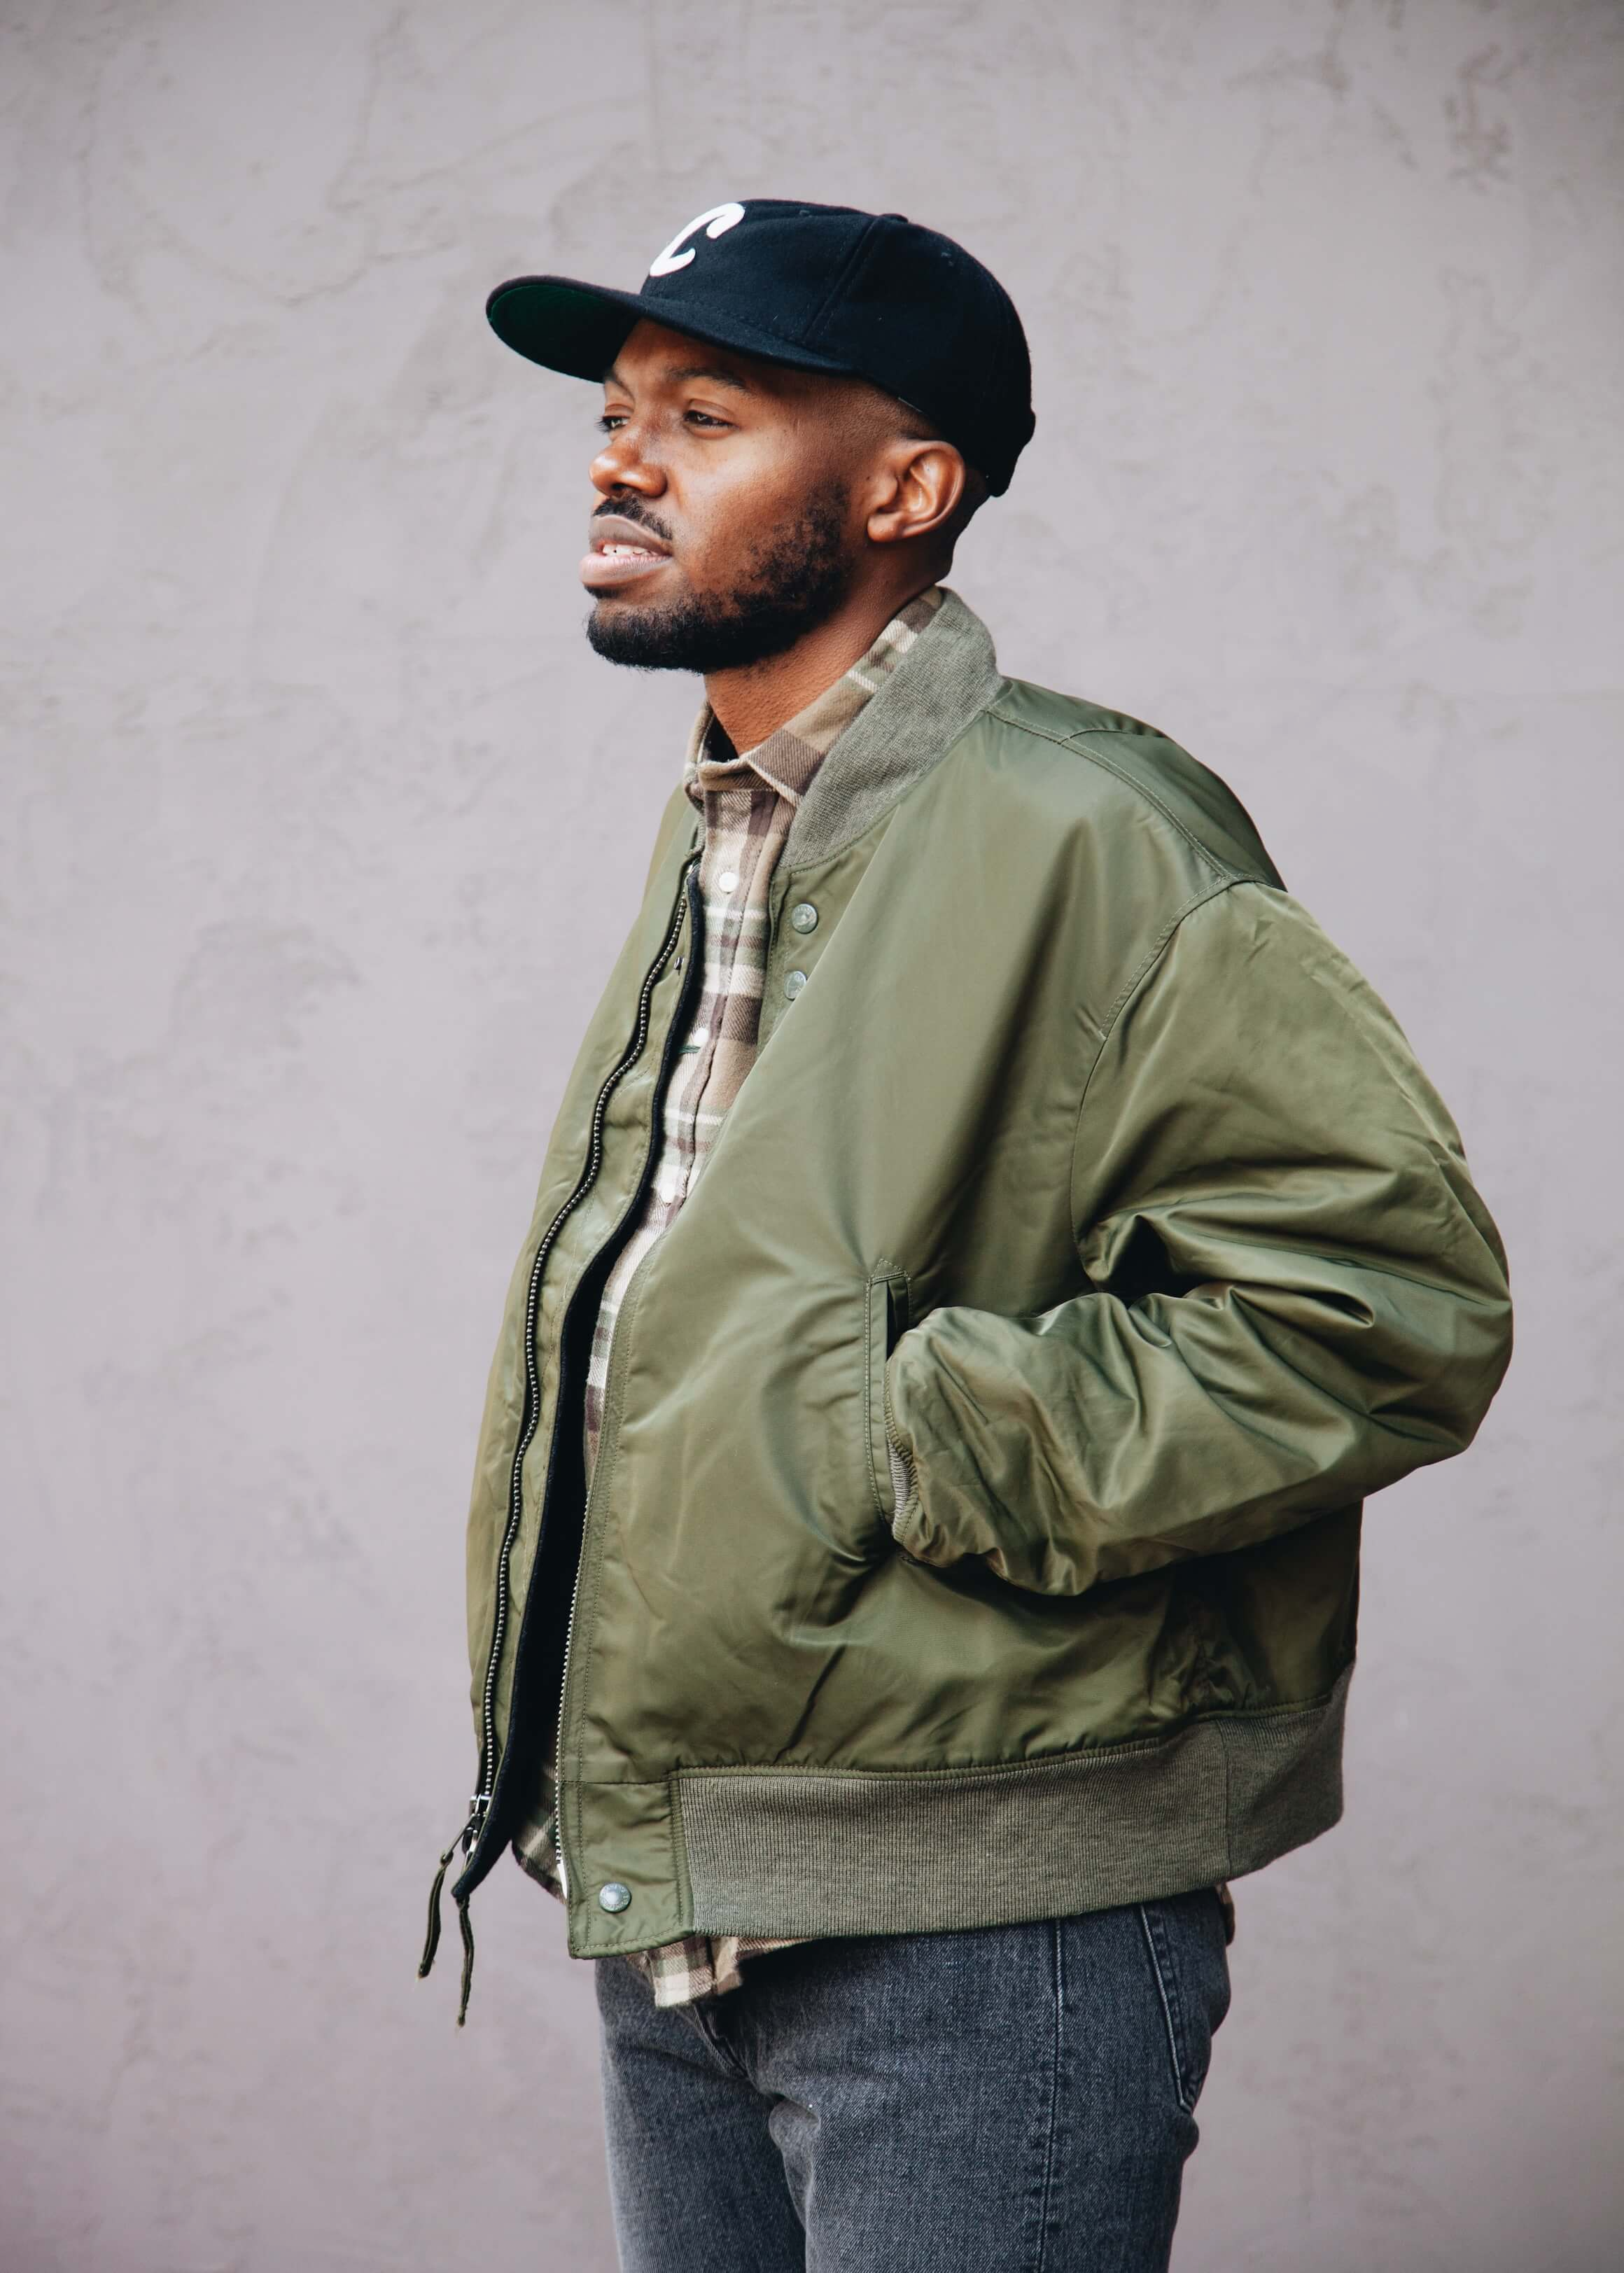 3 ways to style flannels featuring sugar cane co japan flannels